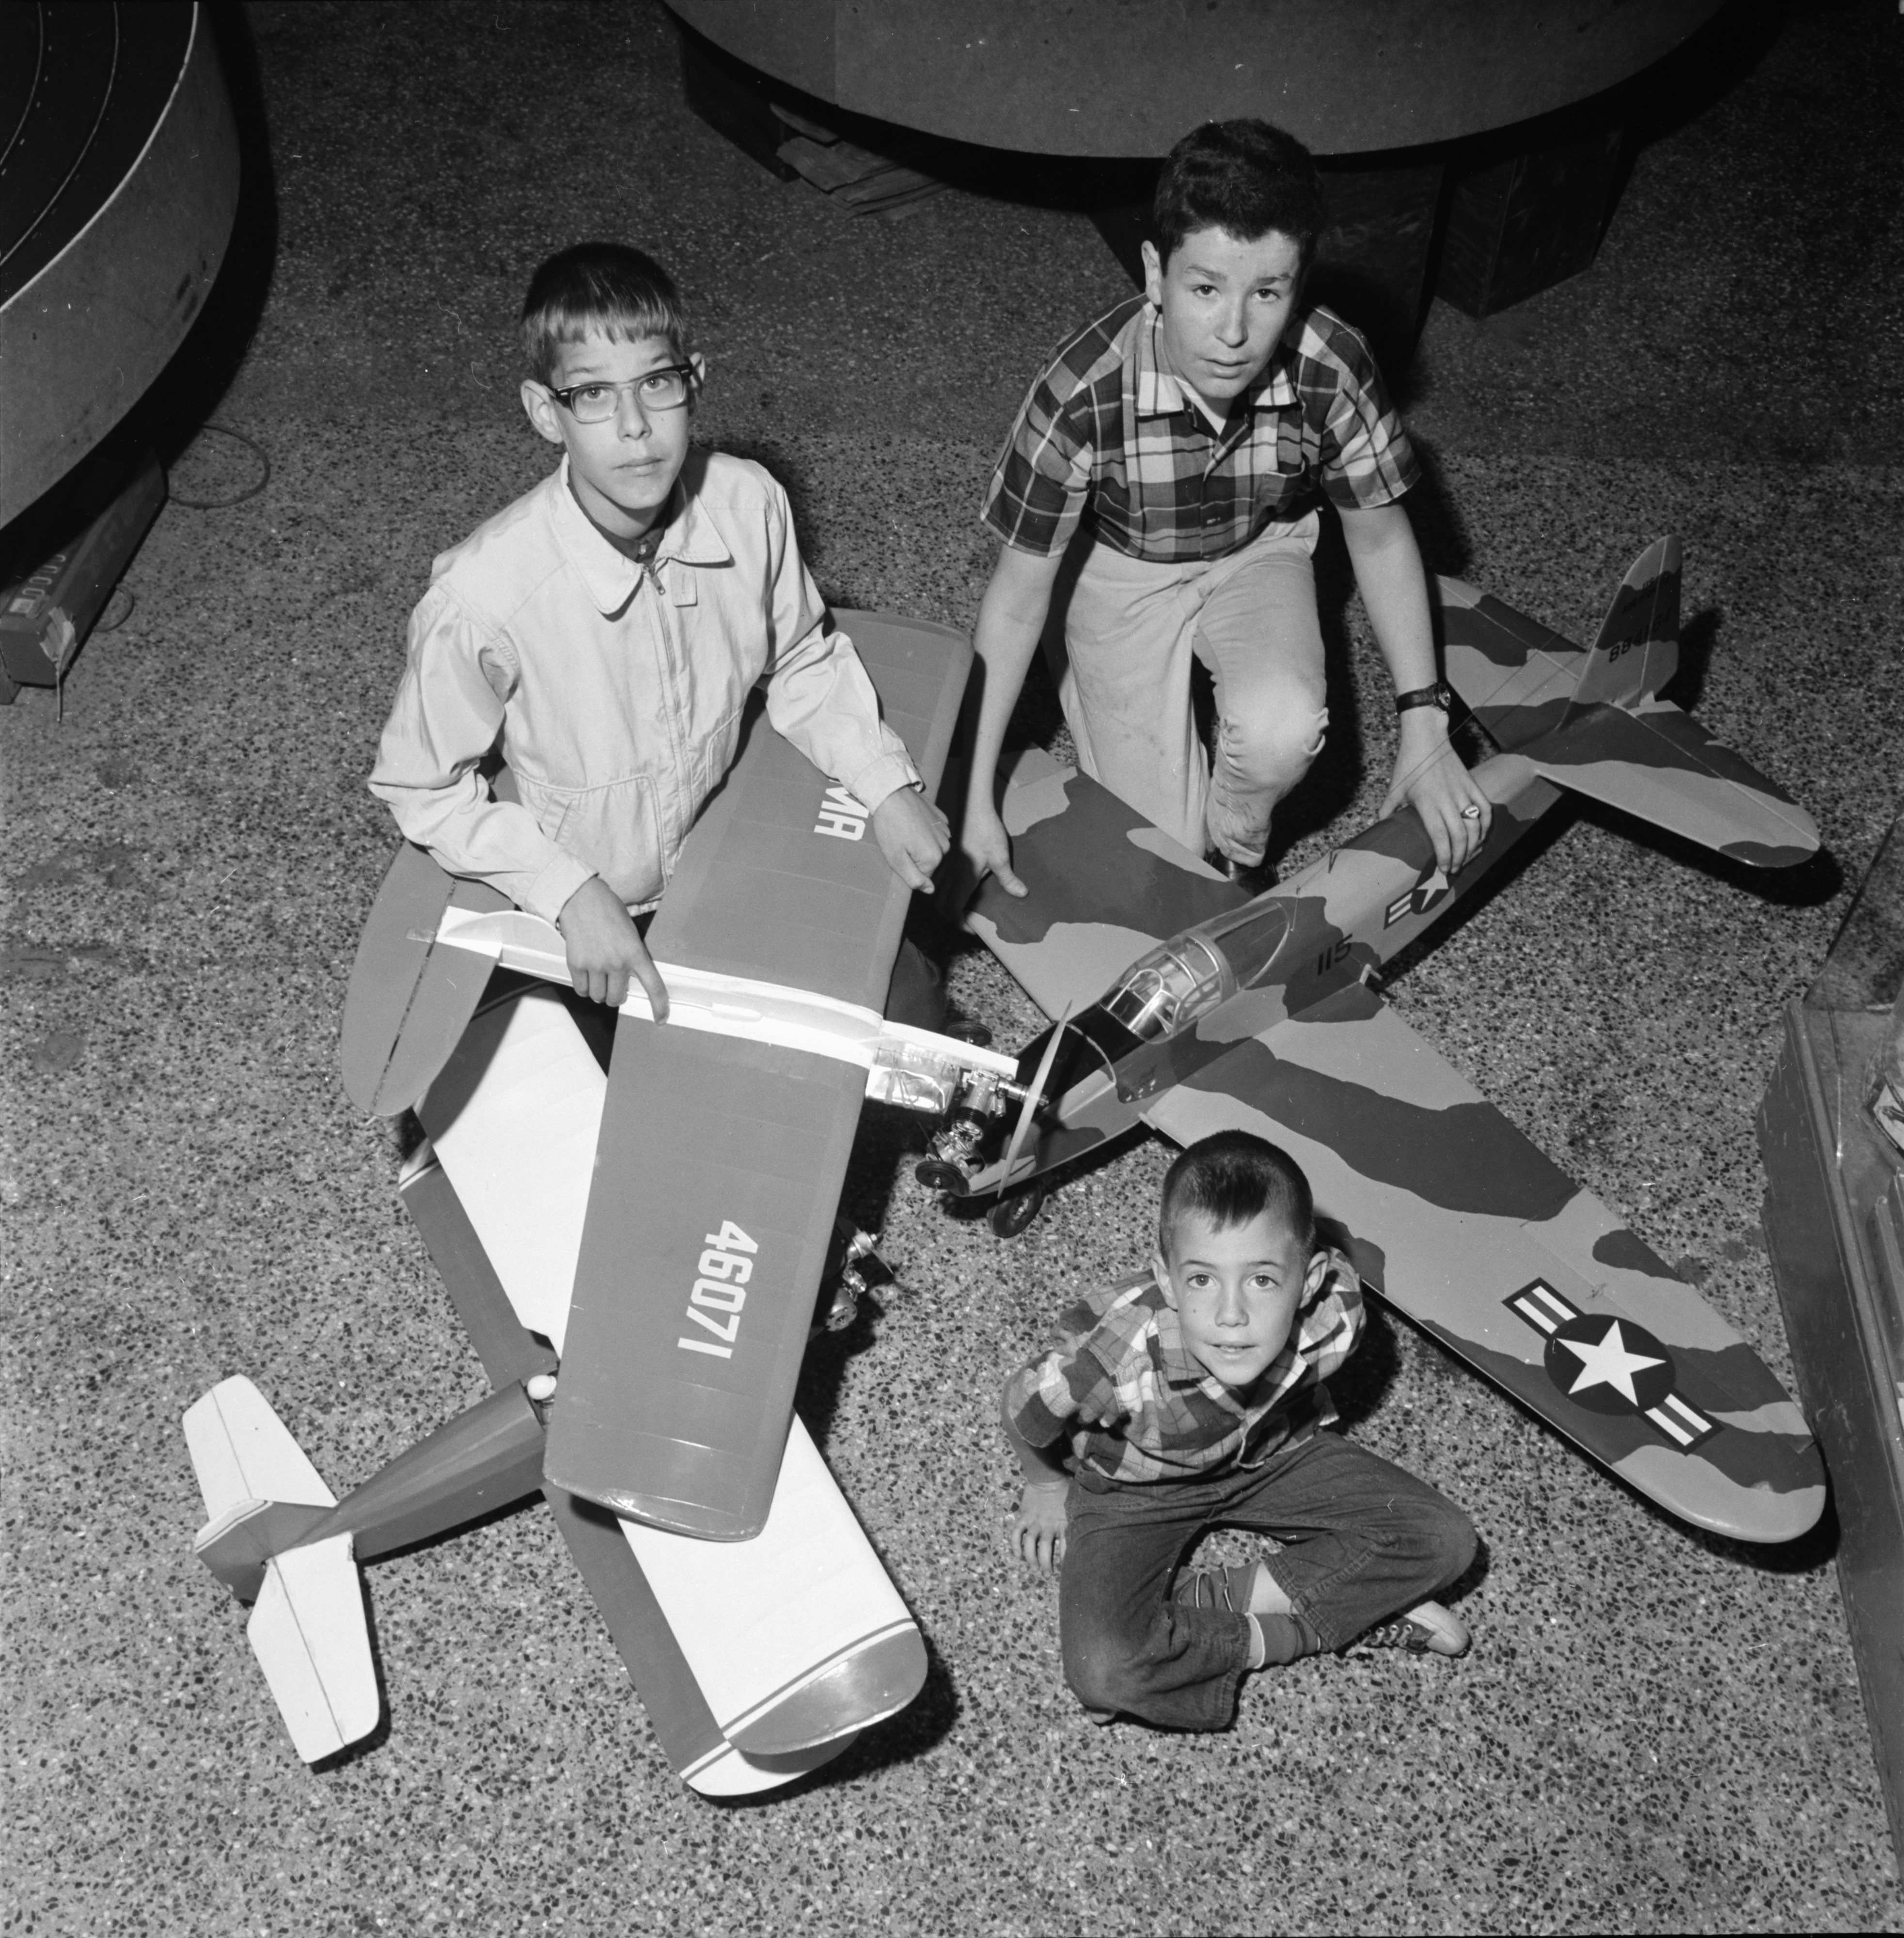 Youths Display Their Model Airplanes For Annual Contest, June 1966 image